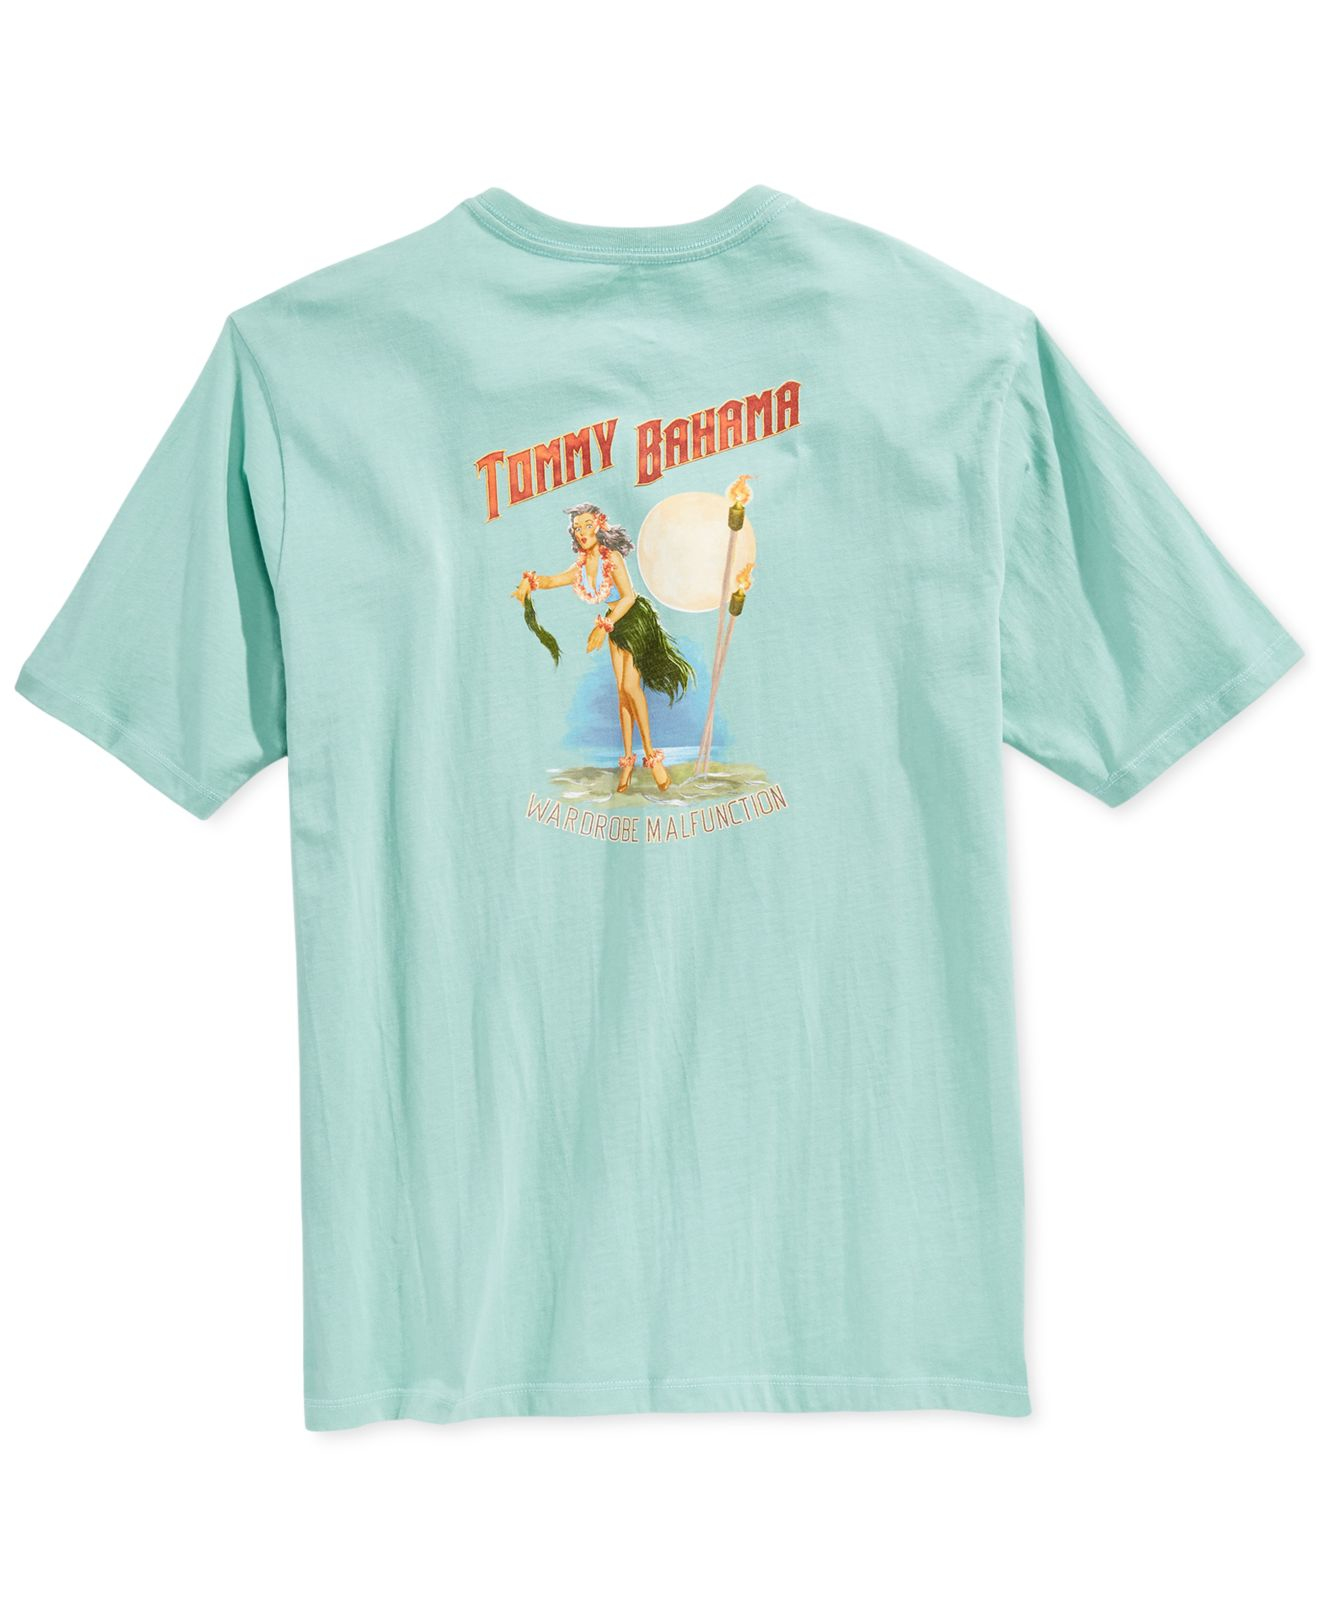 Tommy bahama wardrobe malfunction t shirt in blue for men for Where to buy tommy bahama shirts